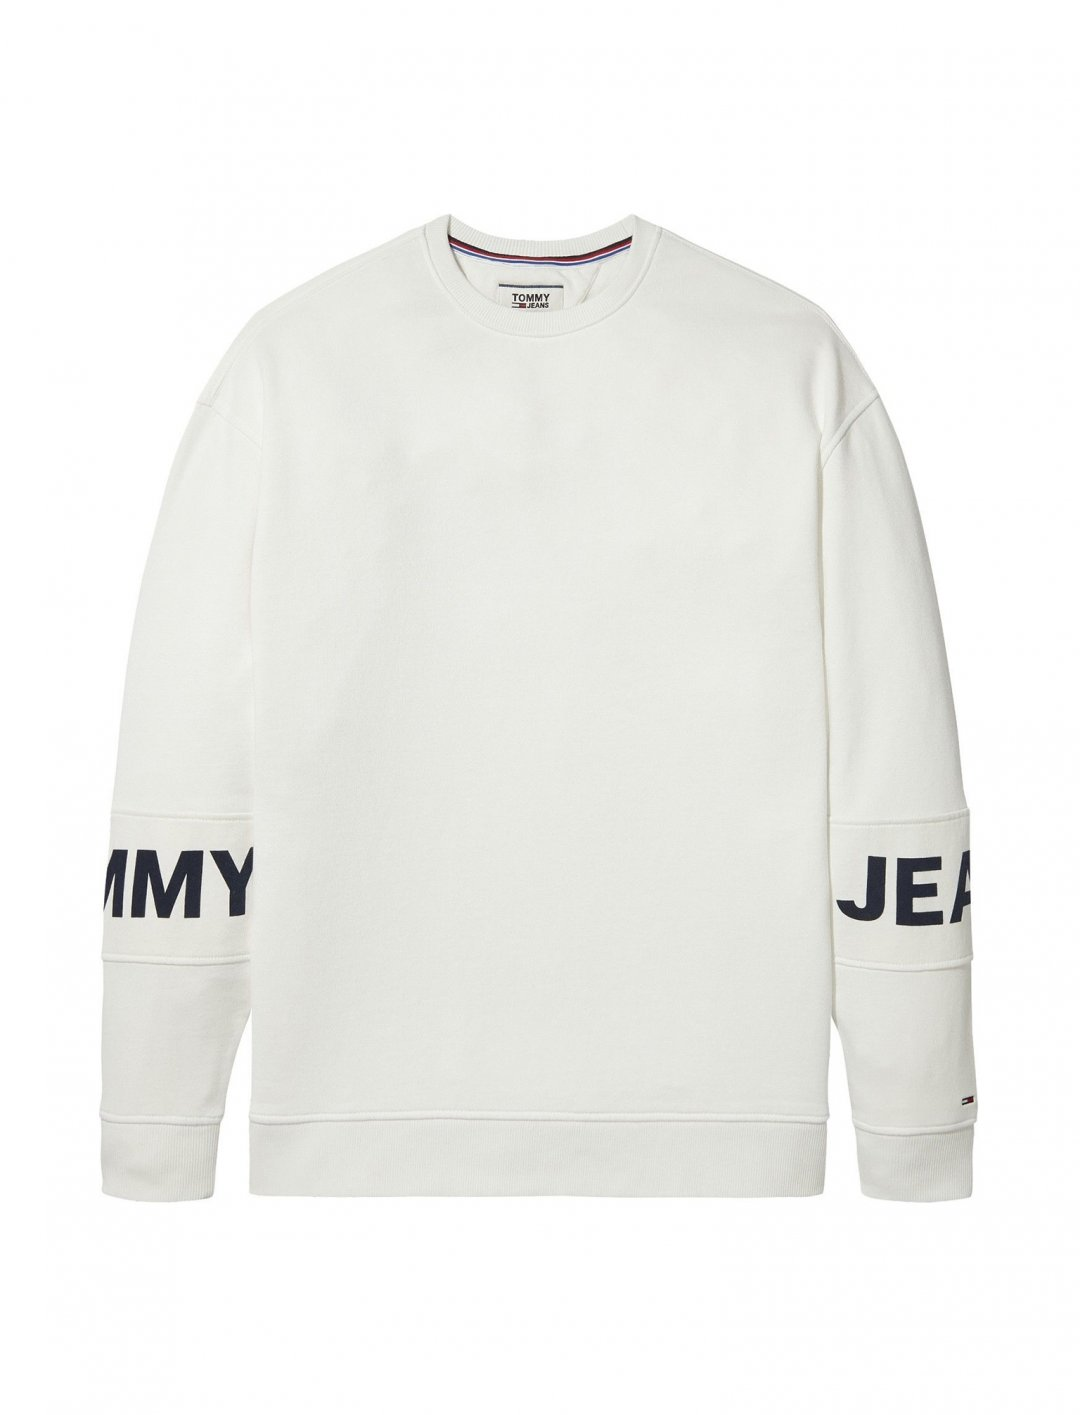 "Hex' Sweatshirt {""id"":5,""product_section_id"":1,""name"":""Clothing"",""order"":5} Tommy Jeans"